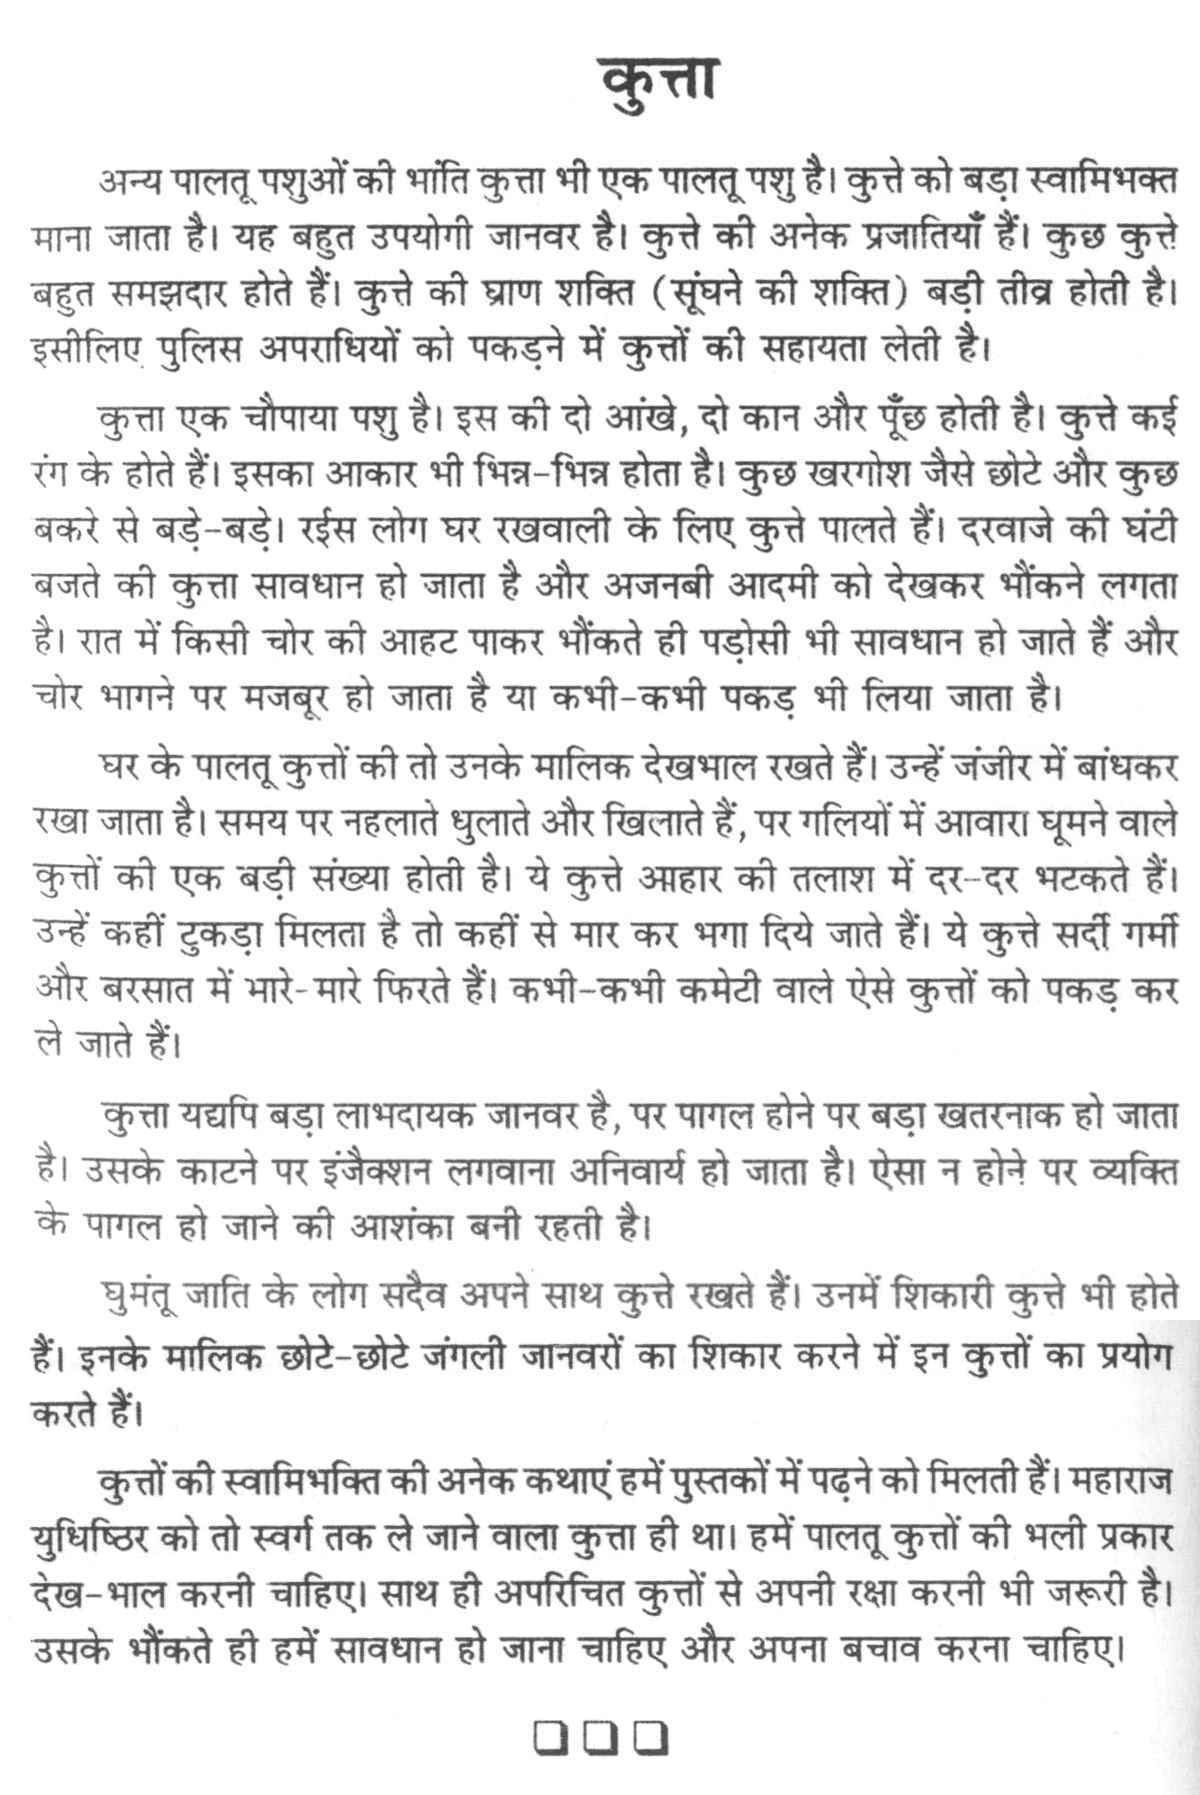 004 Essay Example About Dog Nutrition Lost Tools Of Writing Level Demo 53 Pet Frightening Persuasive Dogs And Cats Comparing My In Hindi Full